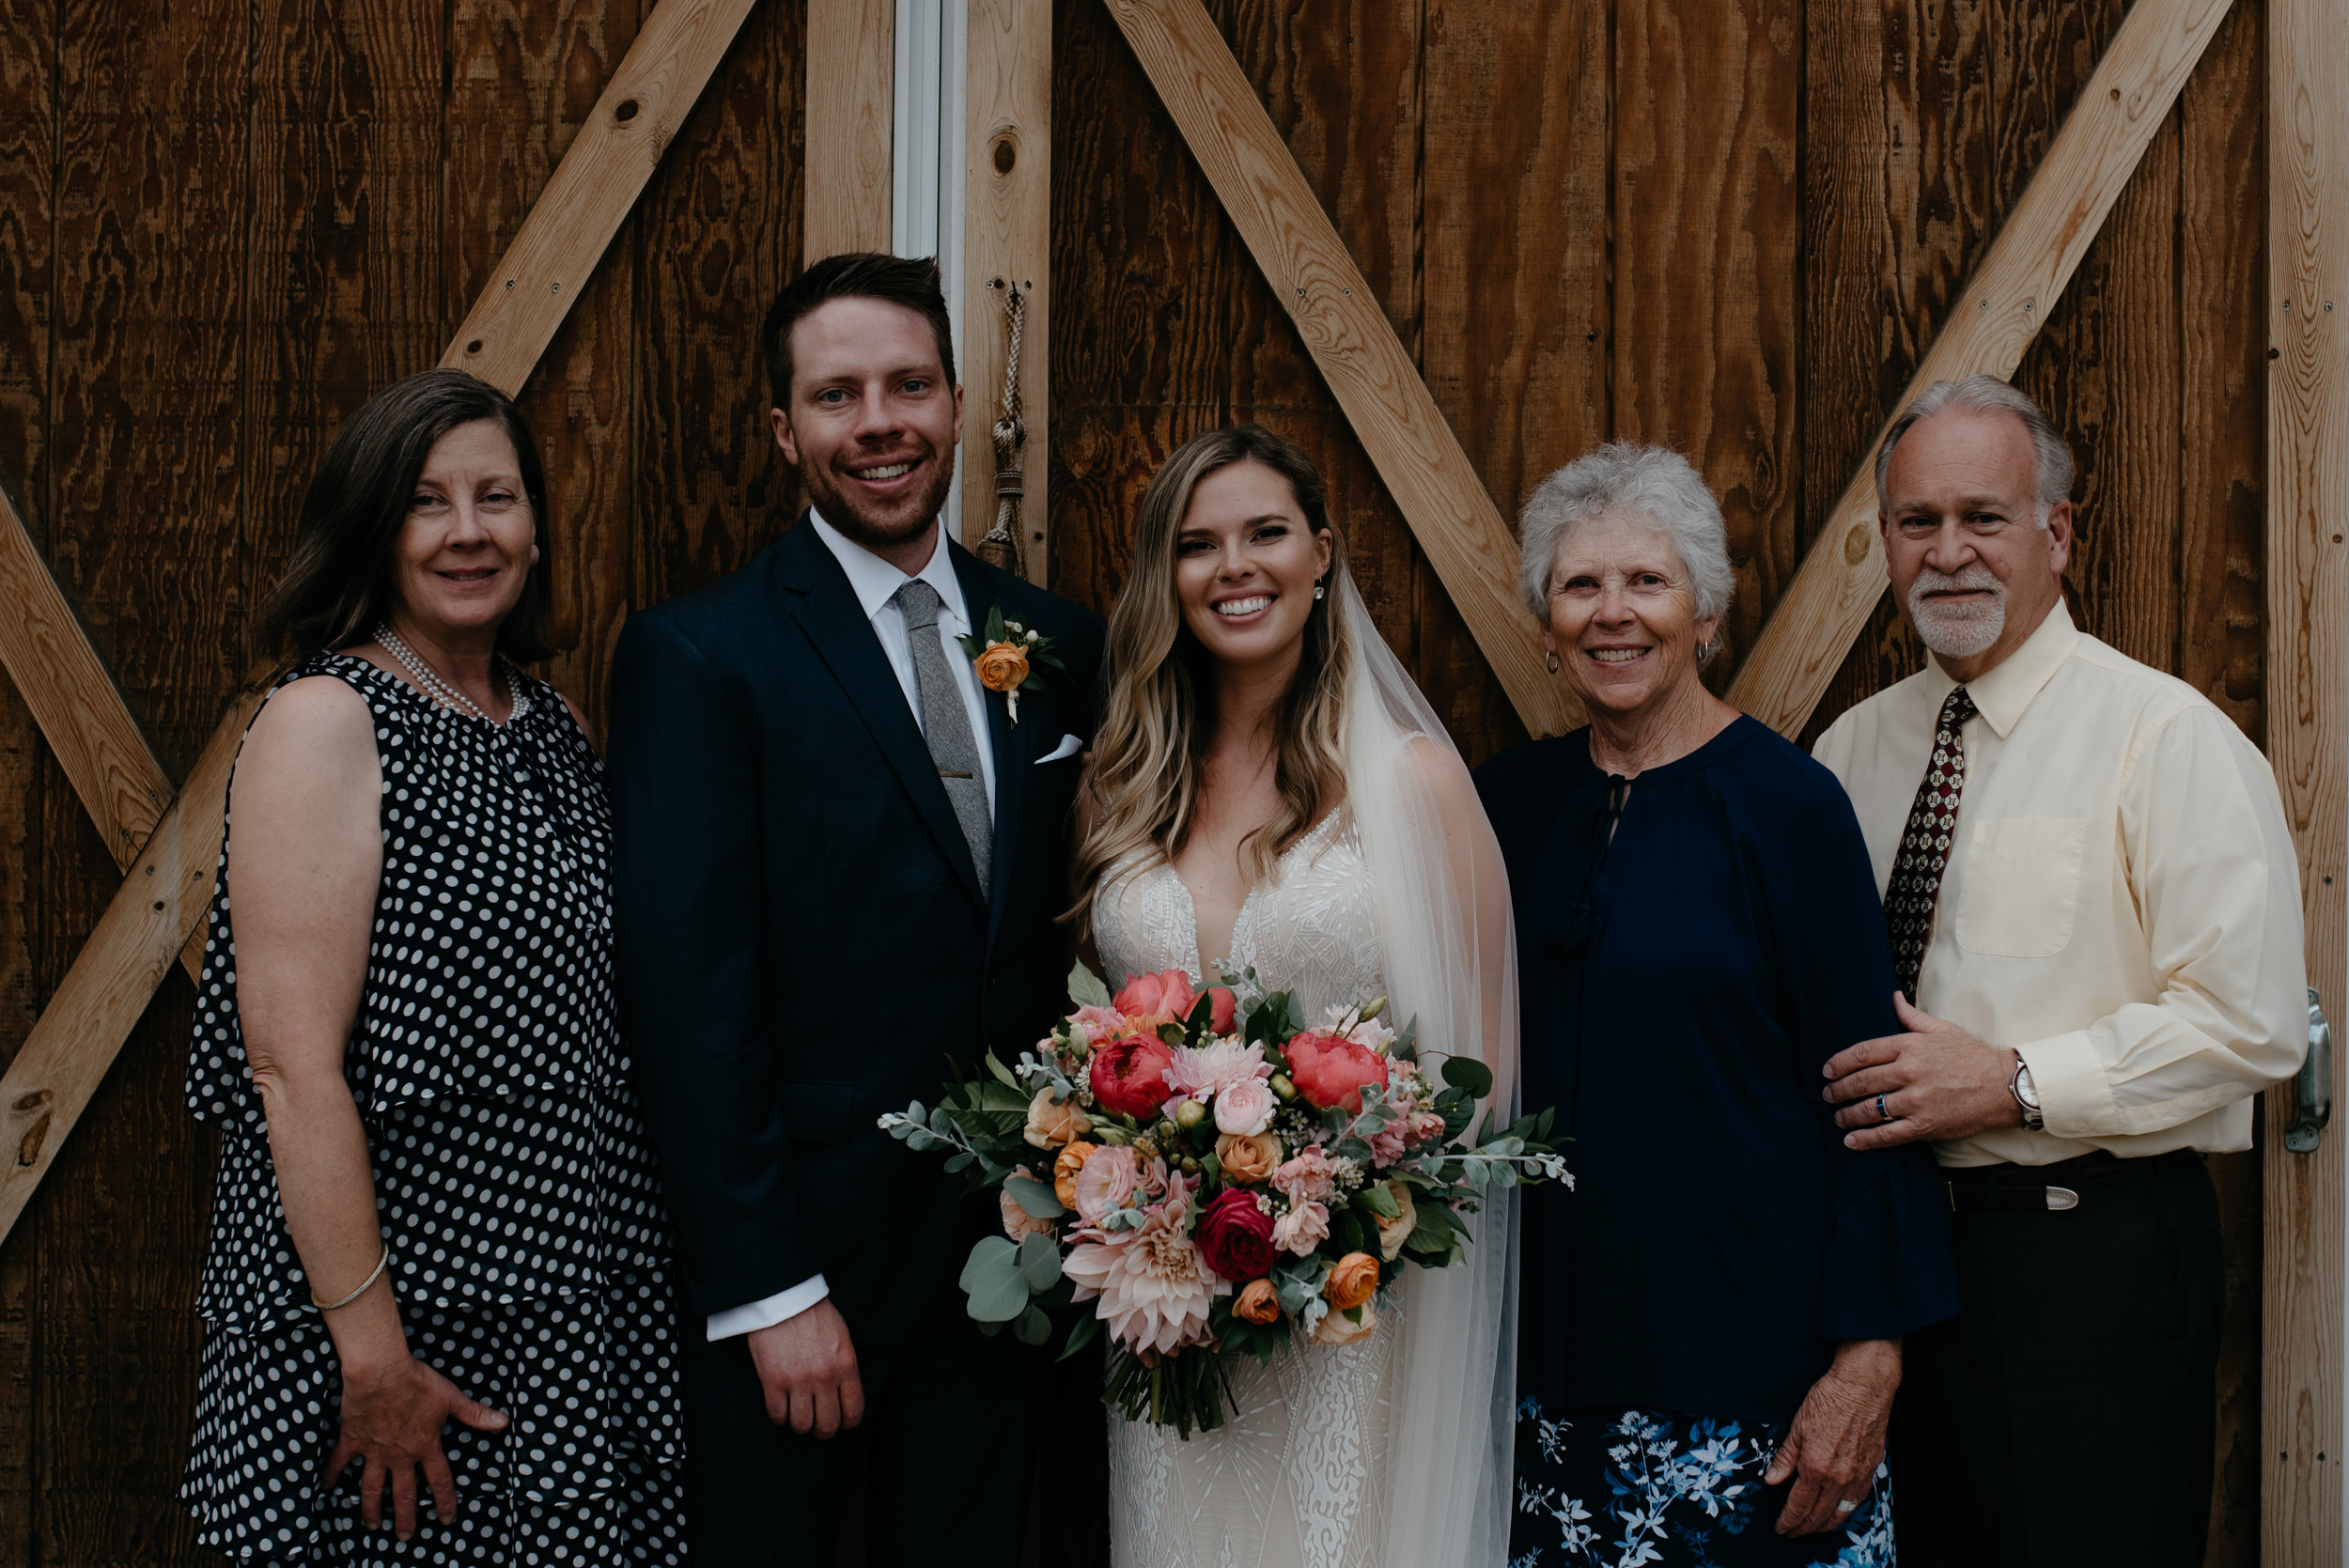 Family formals at intimate Boulder wedding by Colorado wedding photographer.